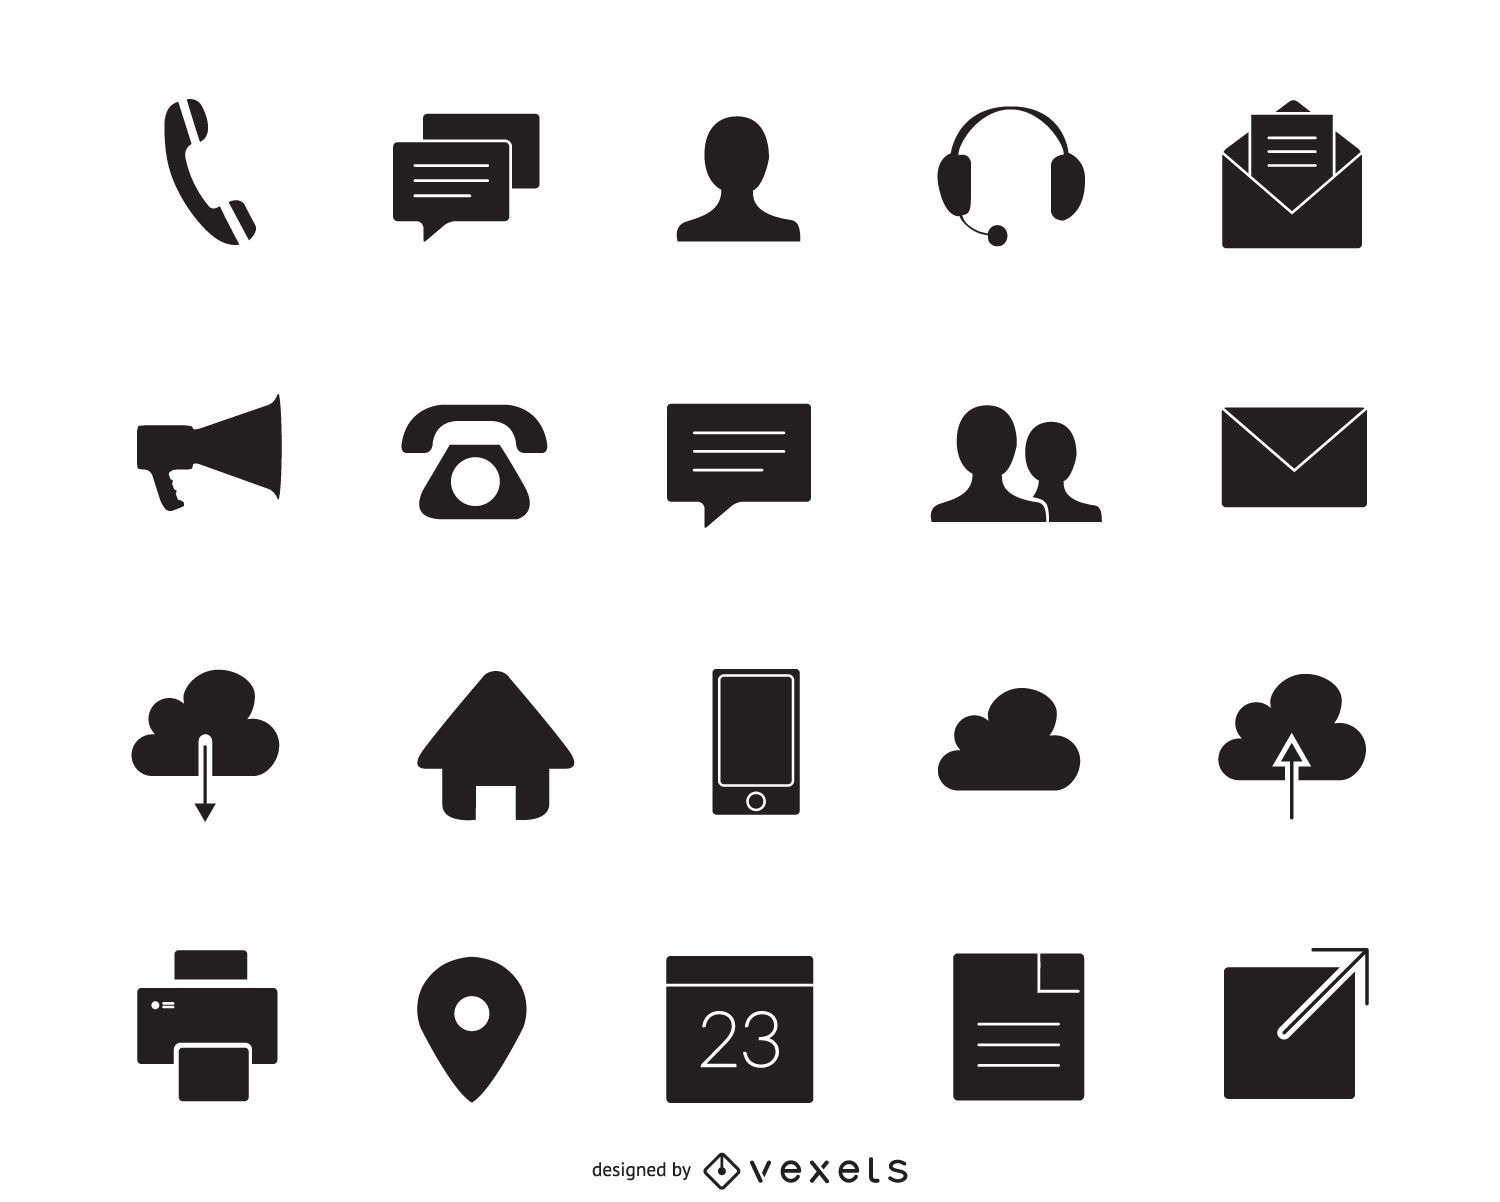 Free Contact Icons Vector - The Best Vector 2017